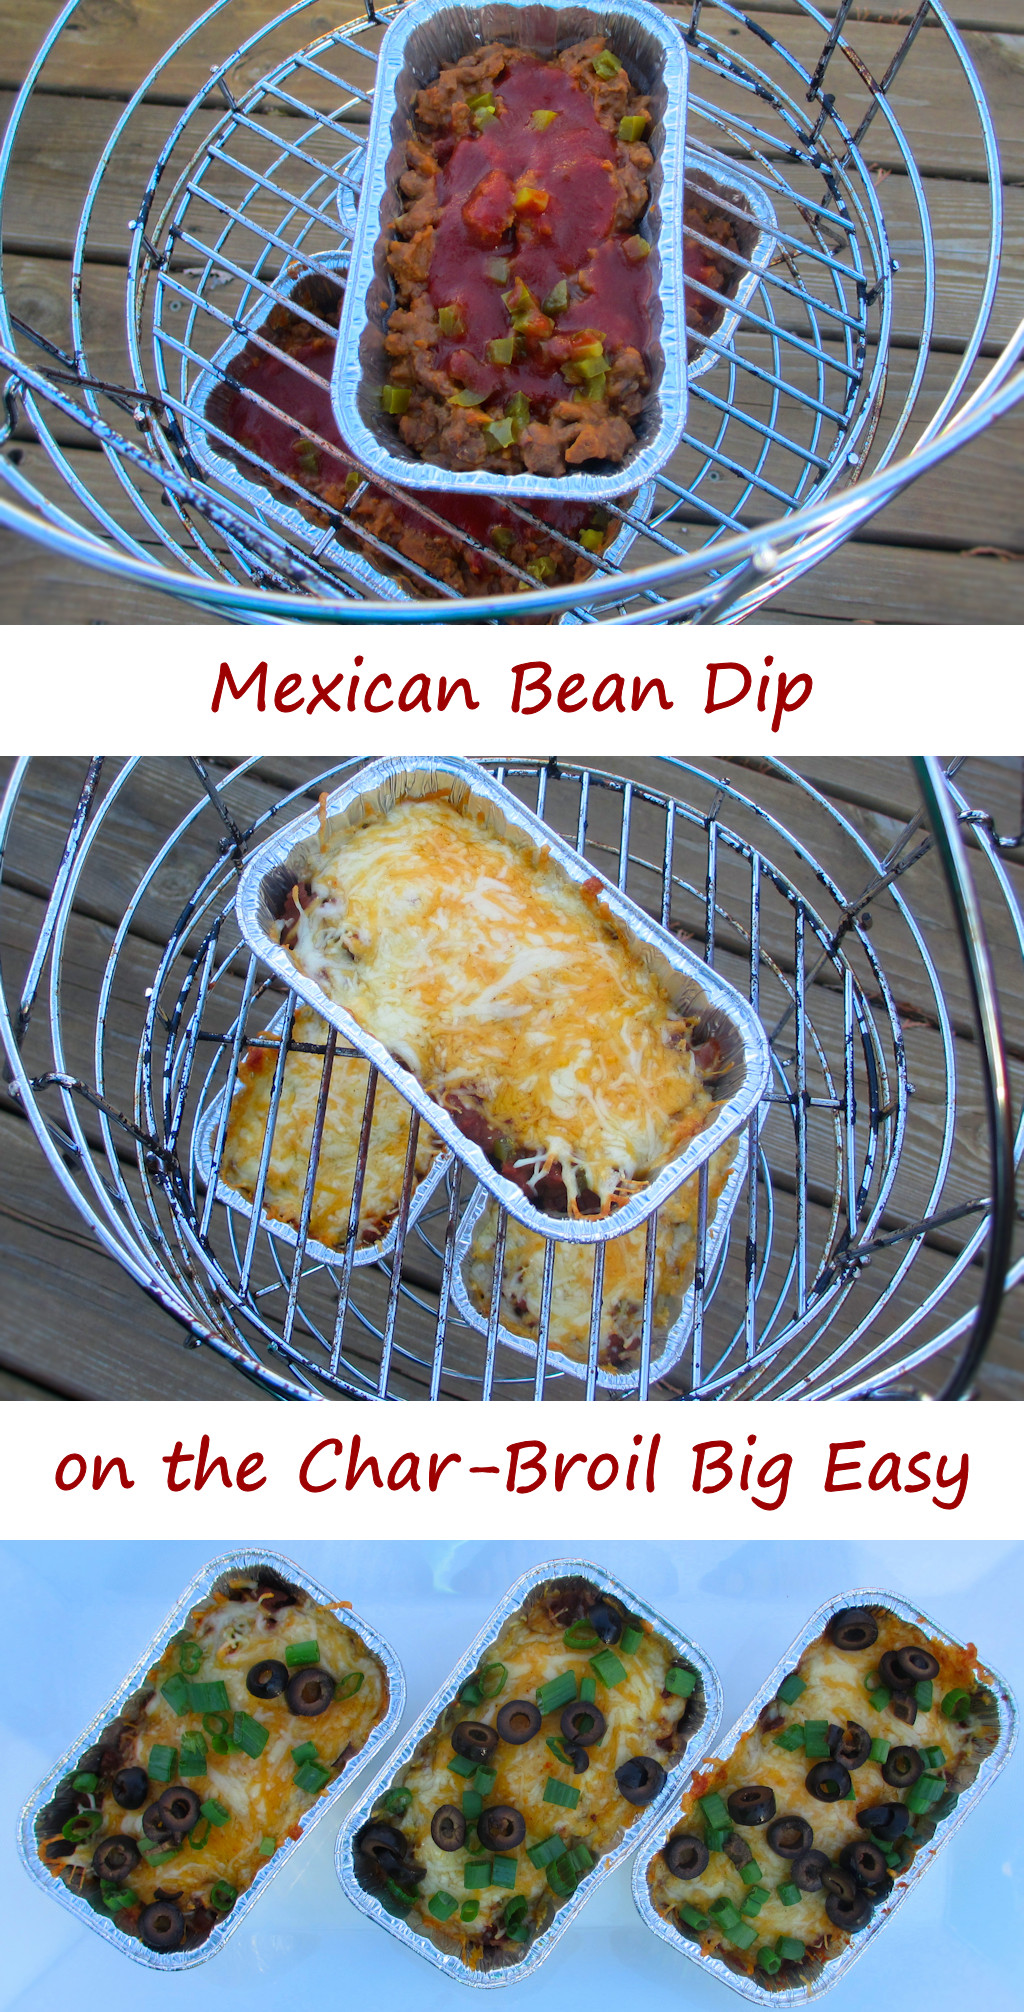 Mexican Bean Dip on the Char-Broil Big Easy